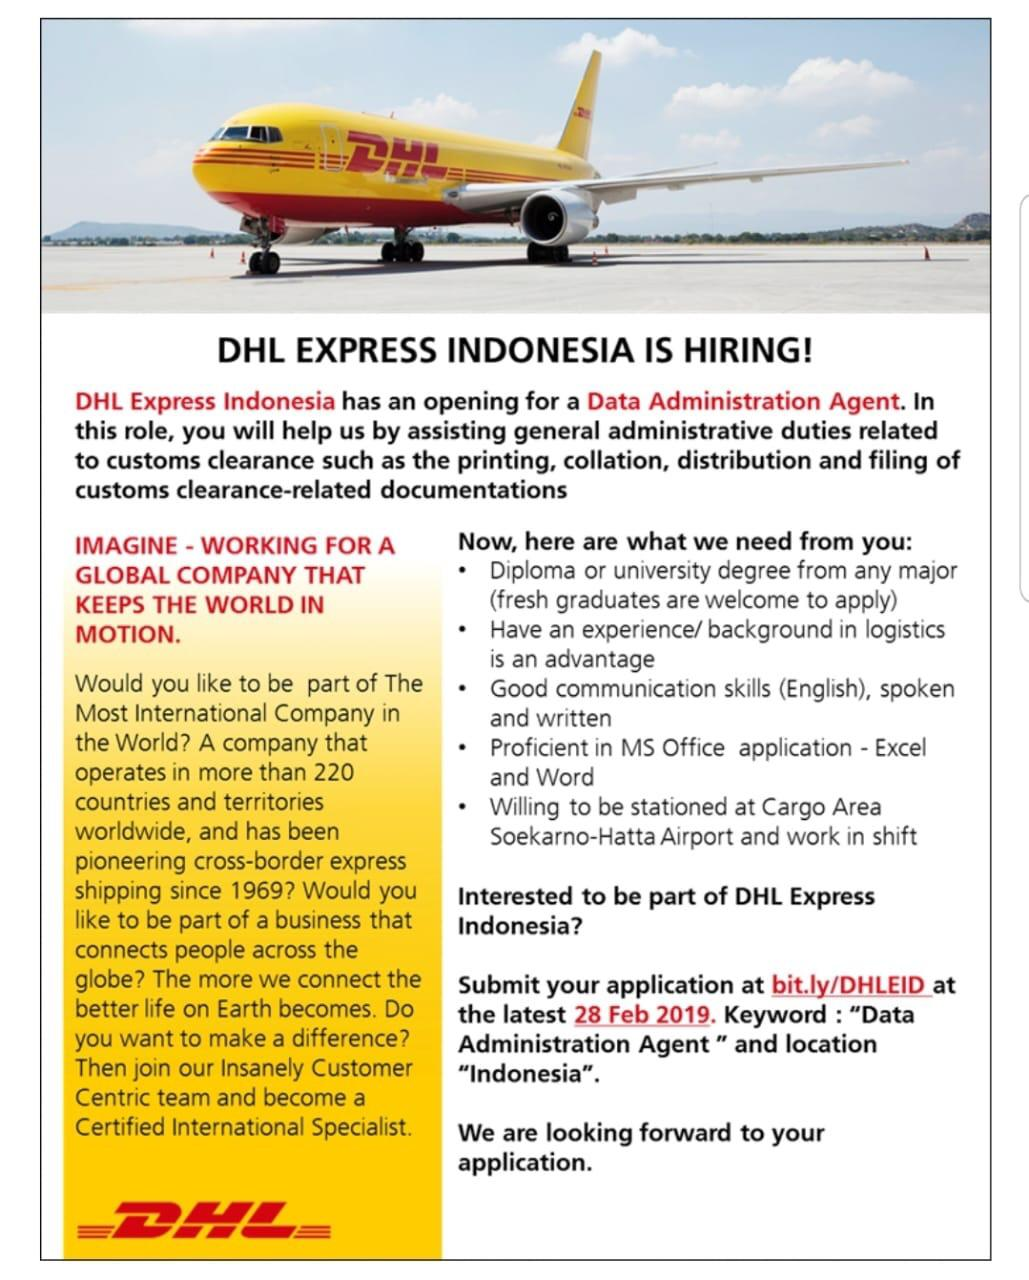 PT. DHL EXPRESS INDONESIA